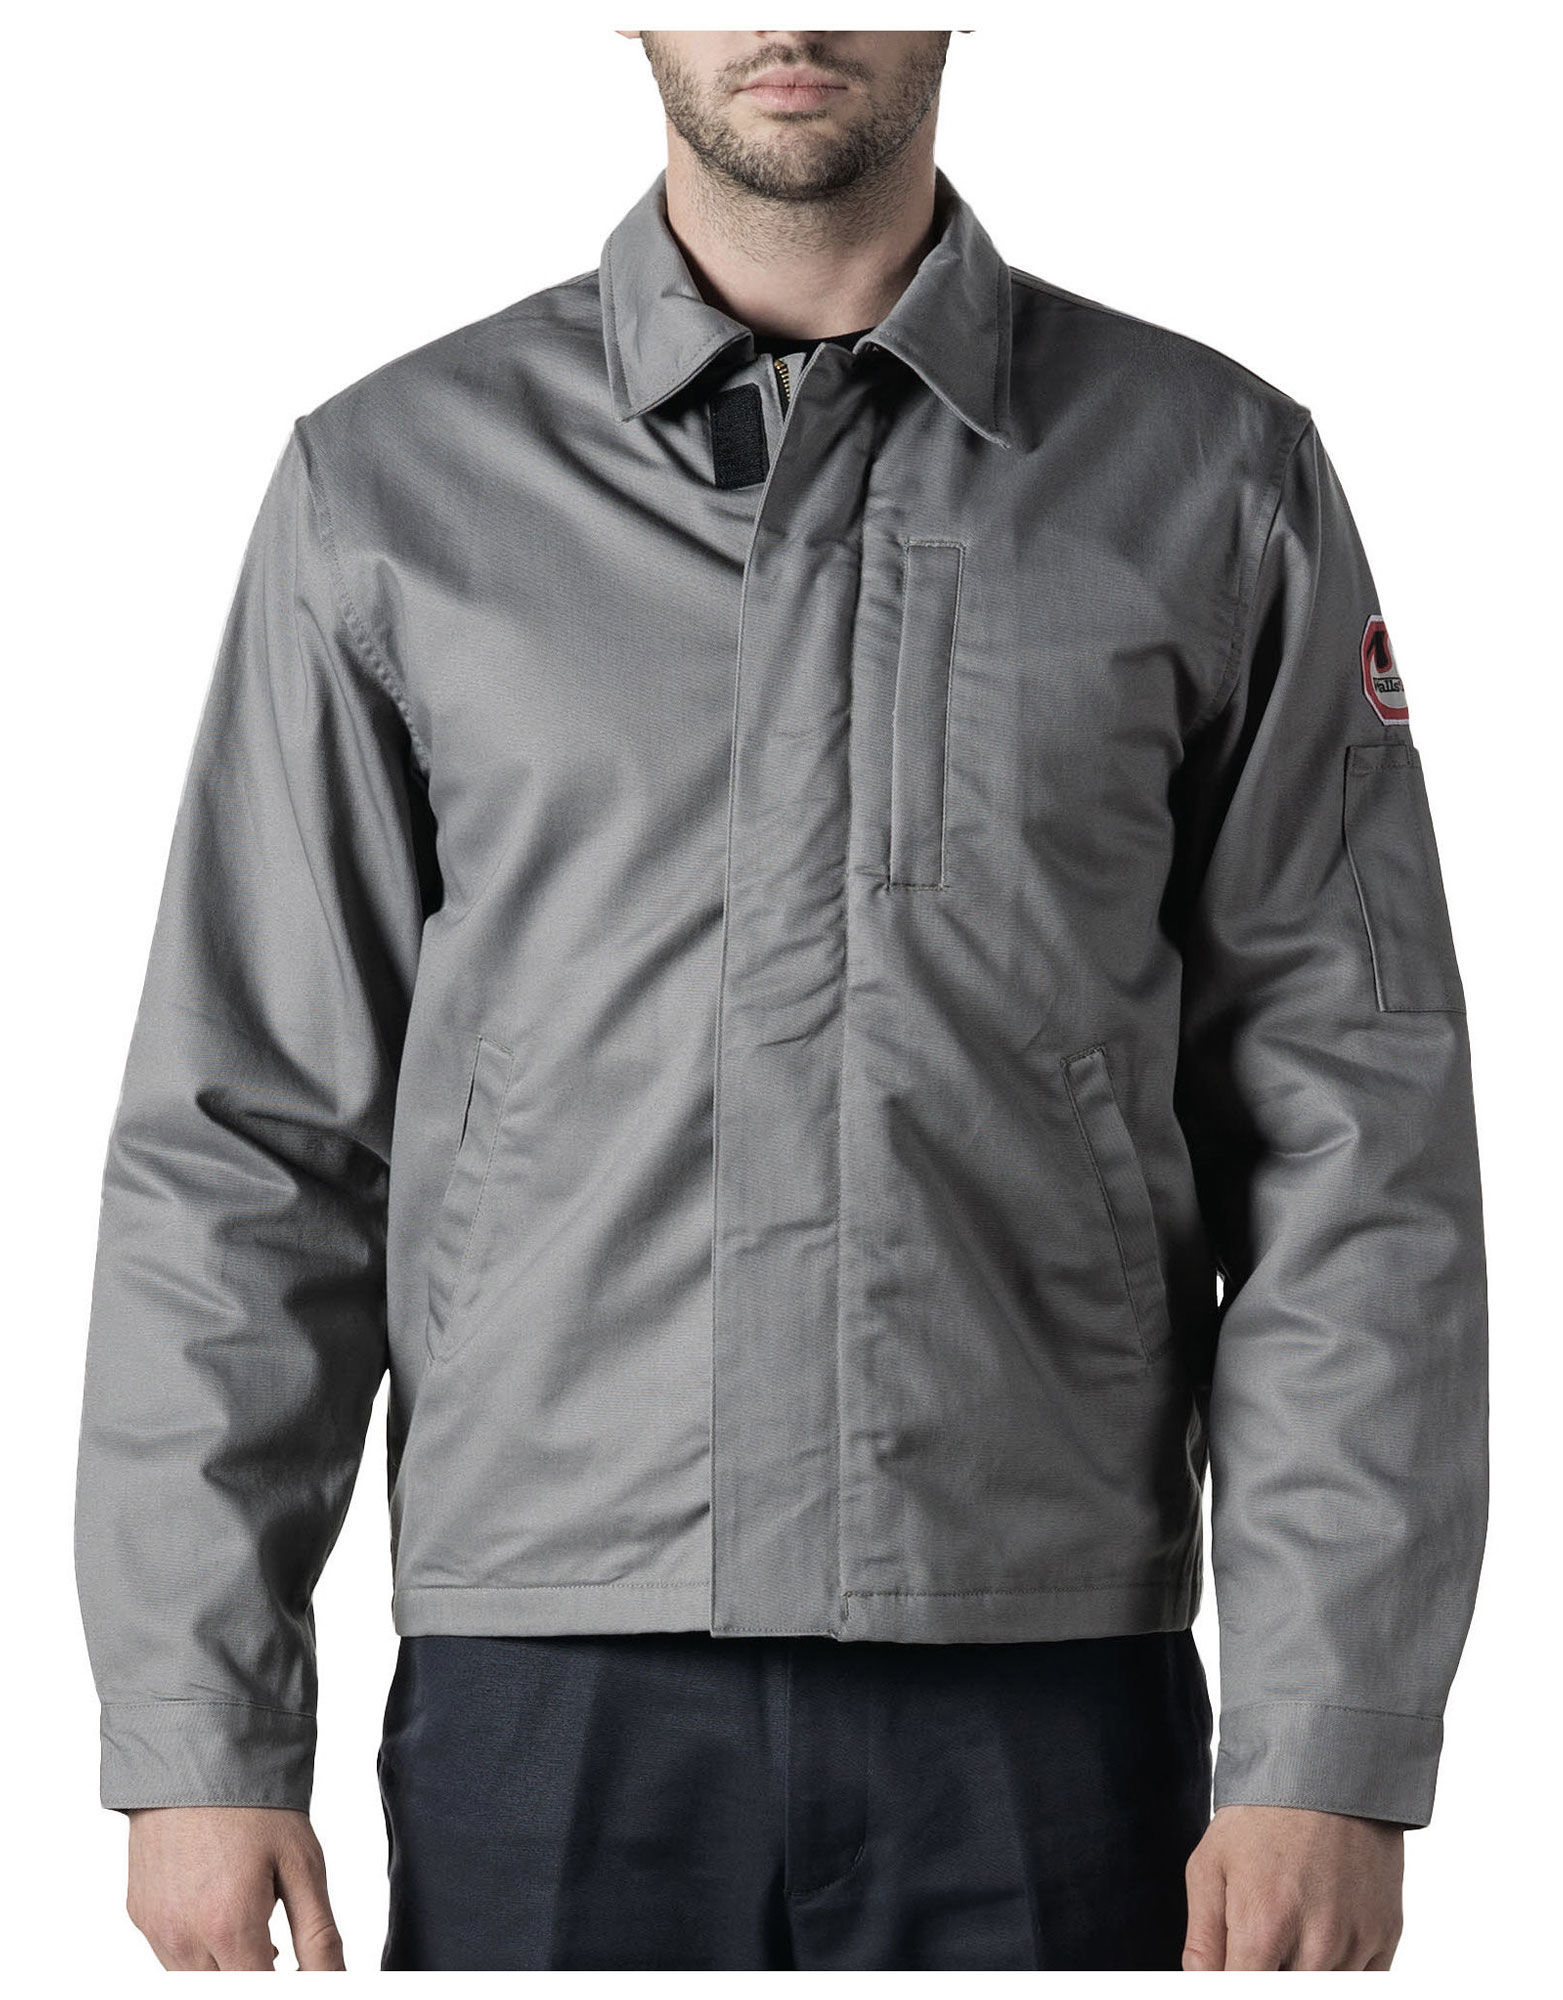 Walls FR Lightweight Utility Jacket-Walls Fr